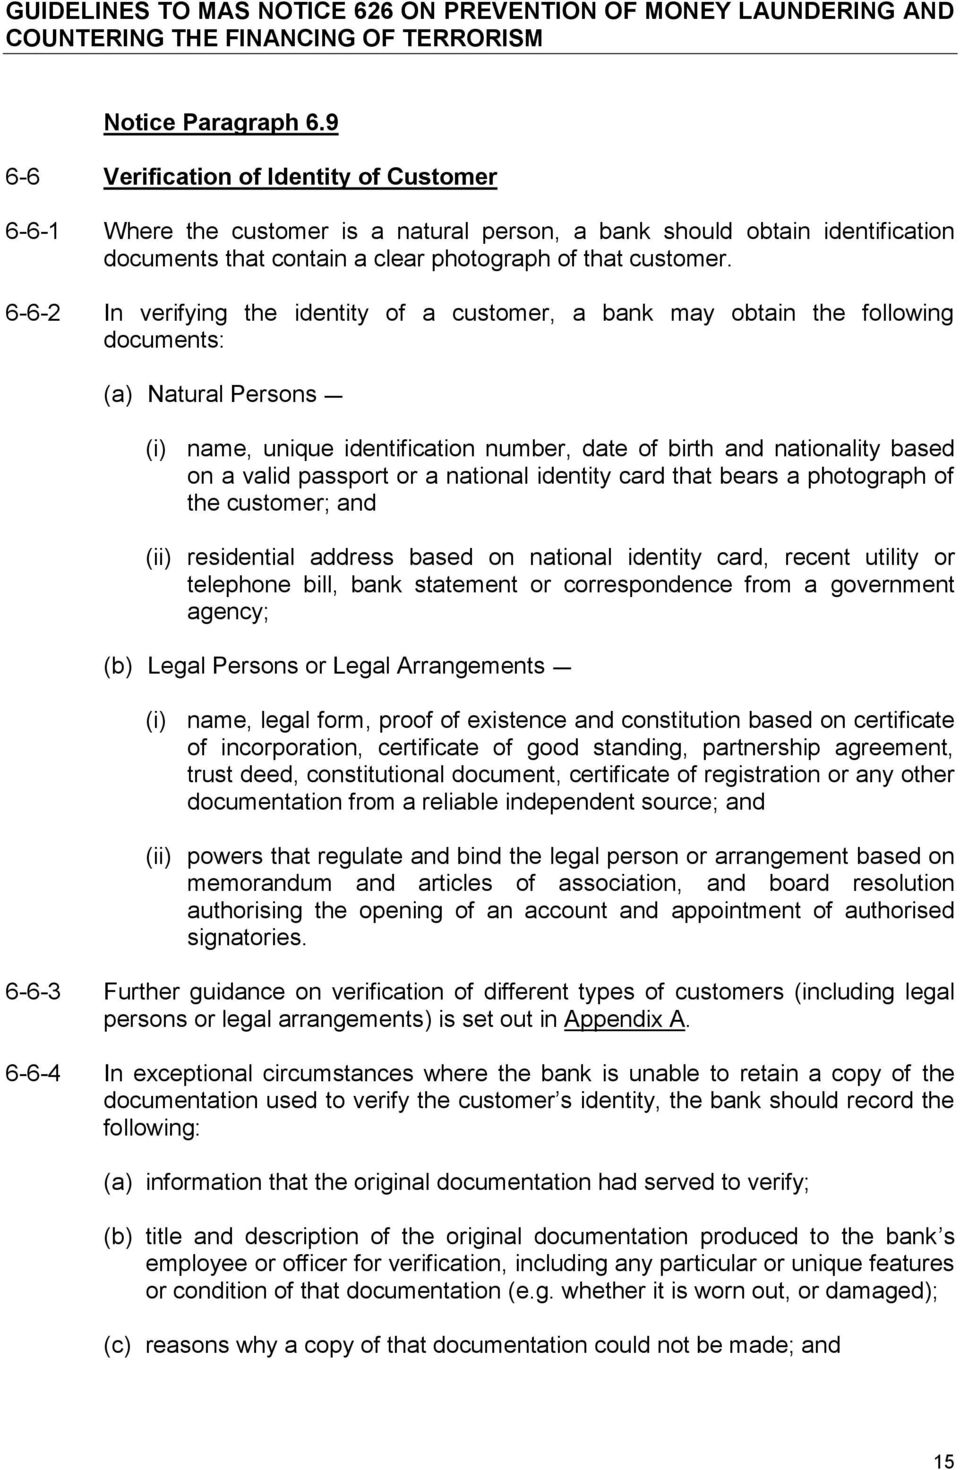 6-6-2 In verifying the identity of a customer, a bank may obtain the following documents: (a) Natural Persons (i) name, unique identification number, date of birth and nationality based on a valid